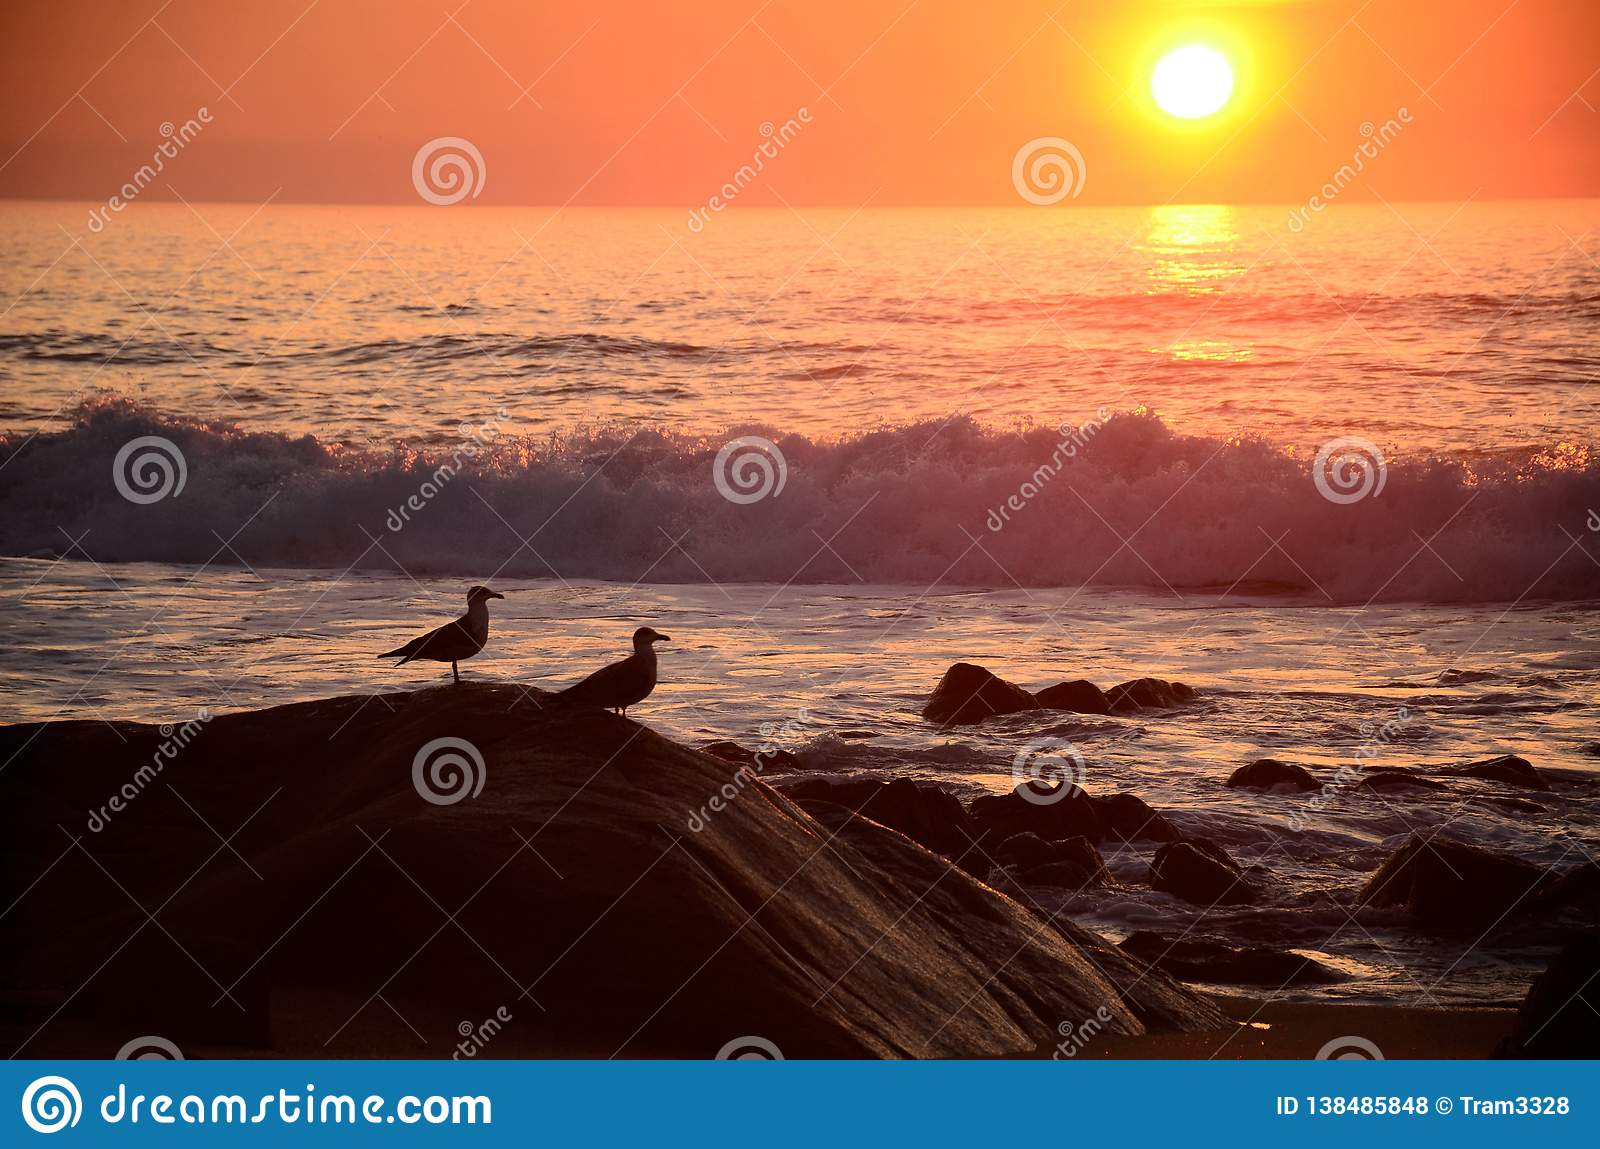 Seagulls on the stones at the shore of the ocean at the sunset.